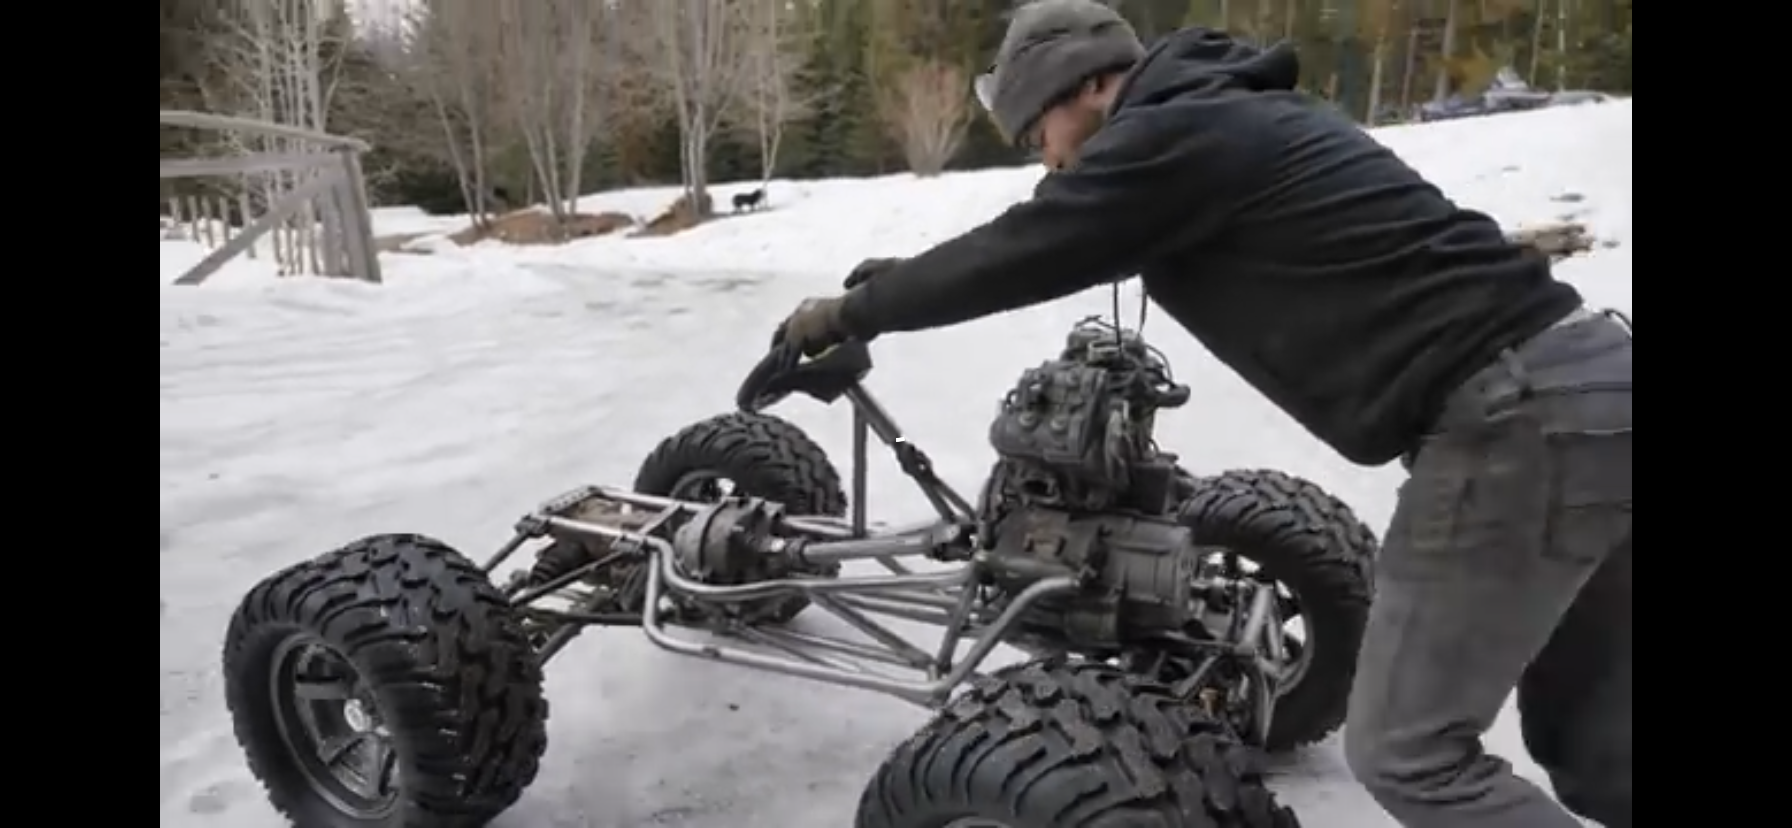 The Four-Wheel-Drive Jeep Kart: Steering, Body Mounts, and Rock Sliders